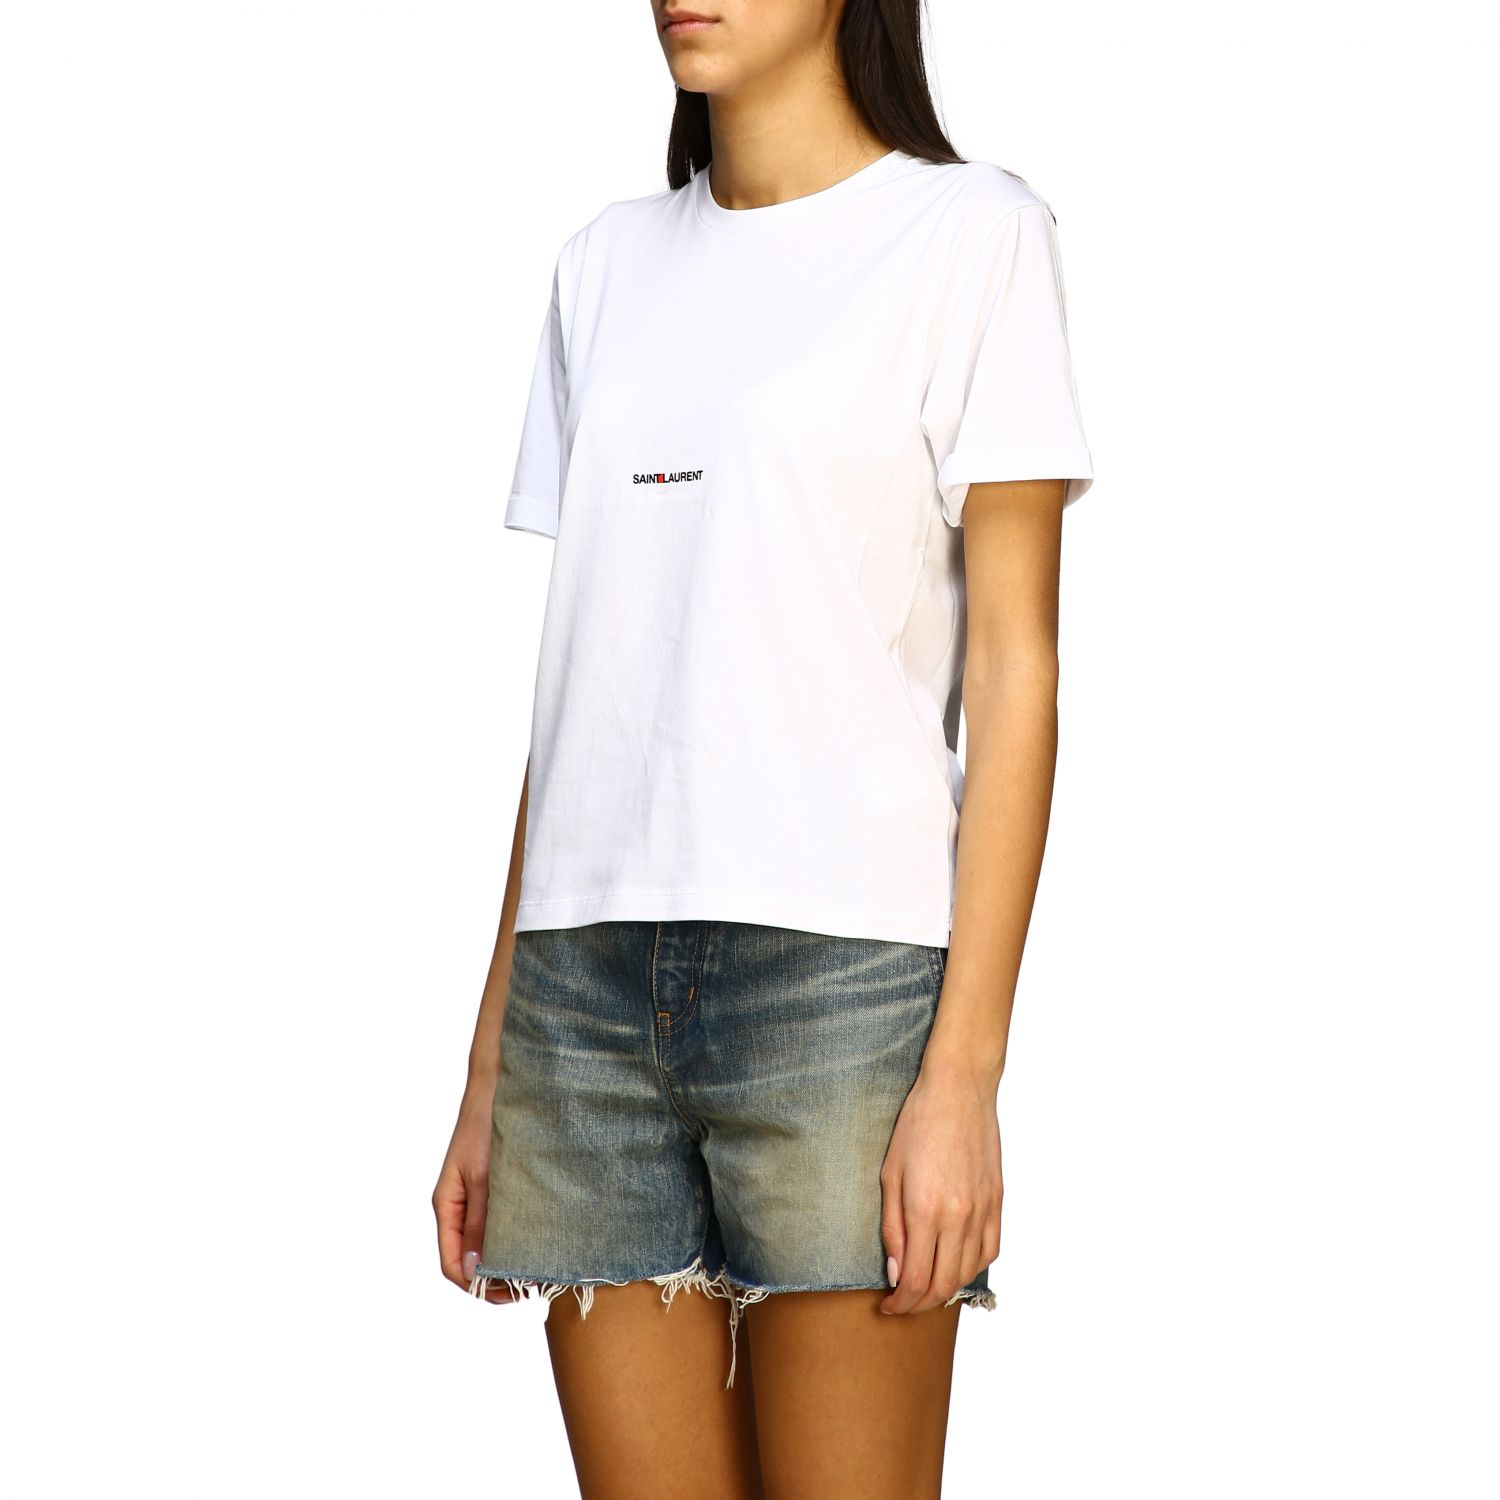 Saint Laurent T-Shirt mit Logo weiß 4